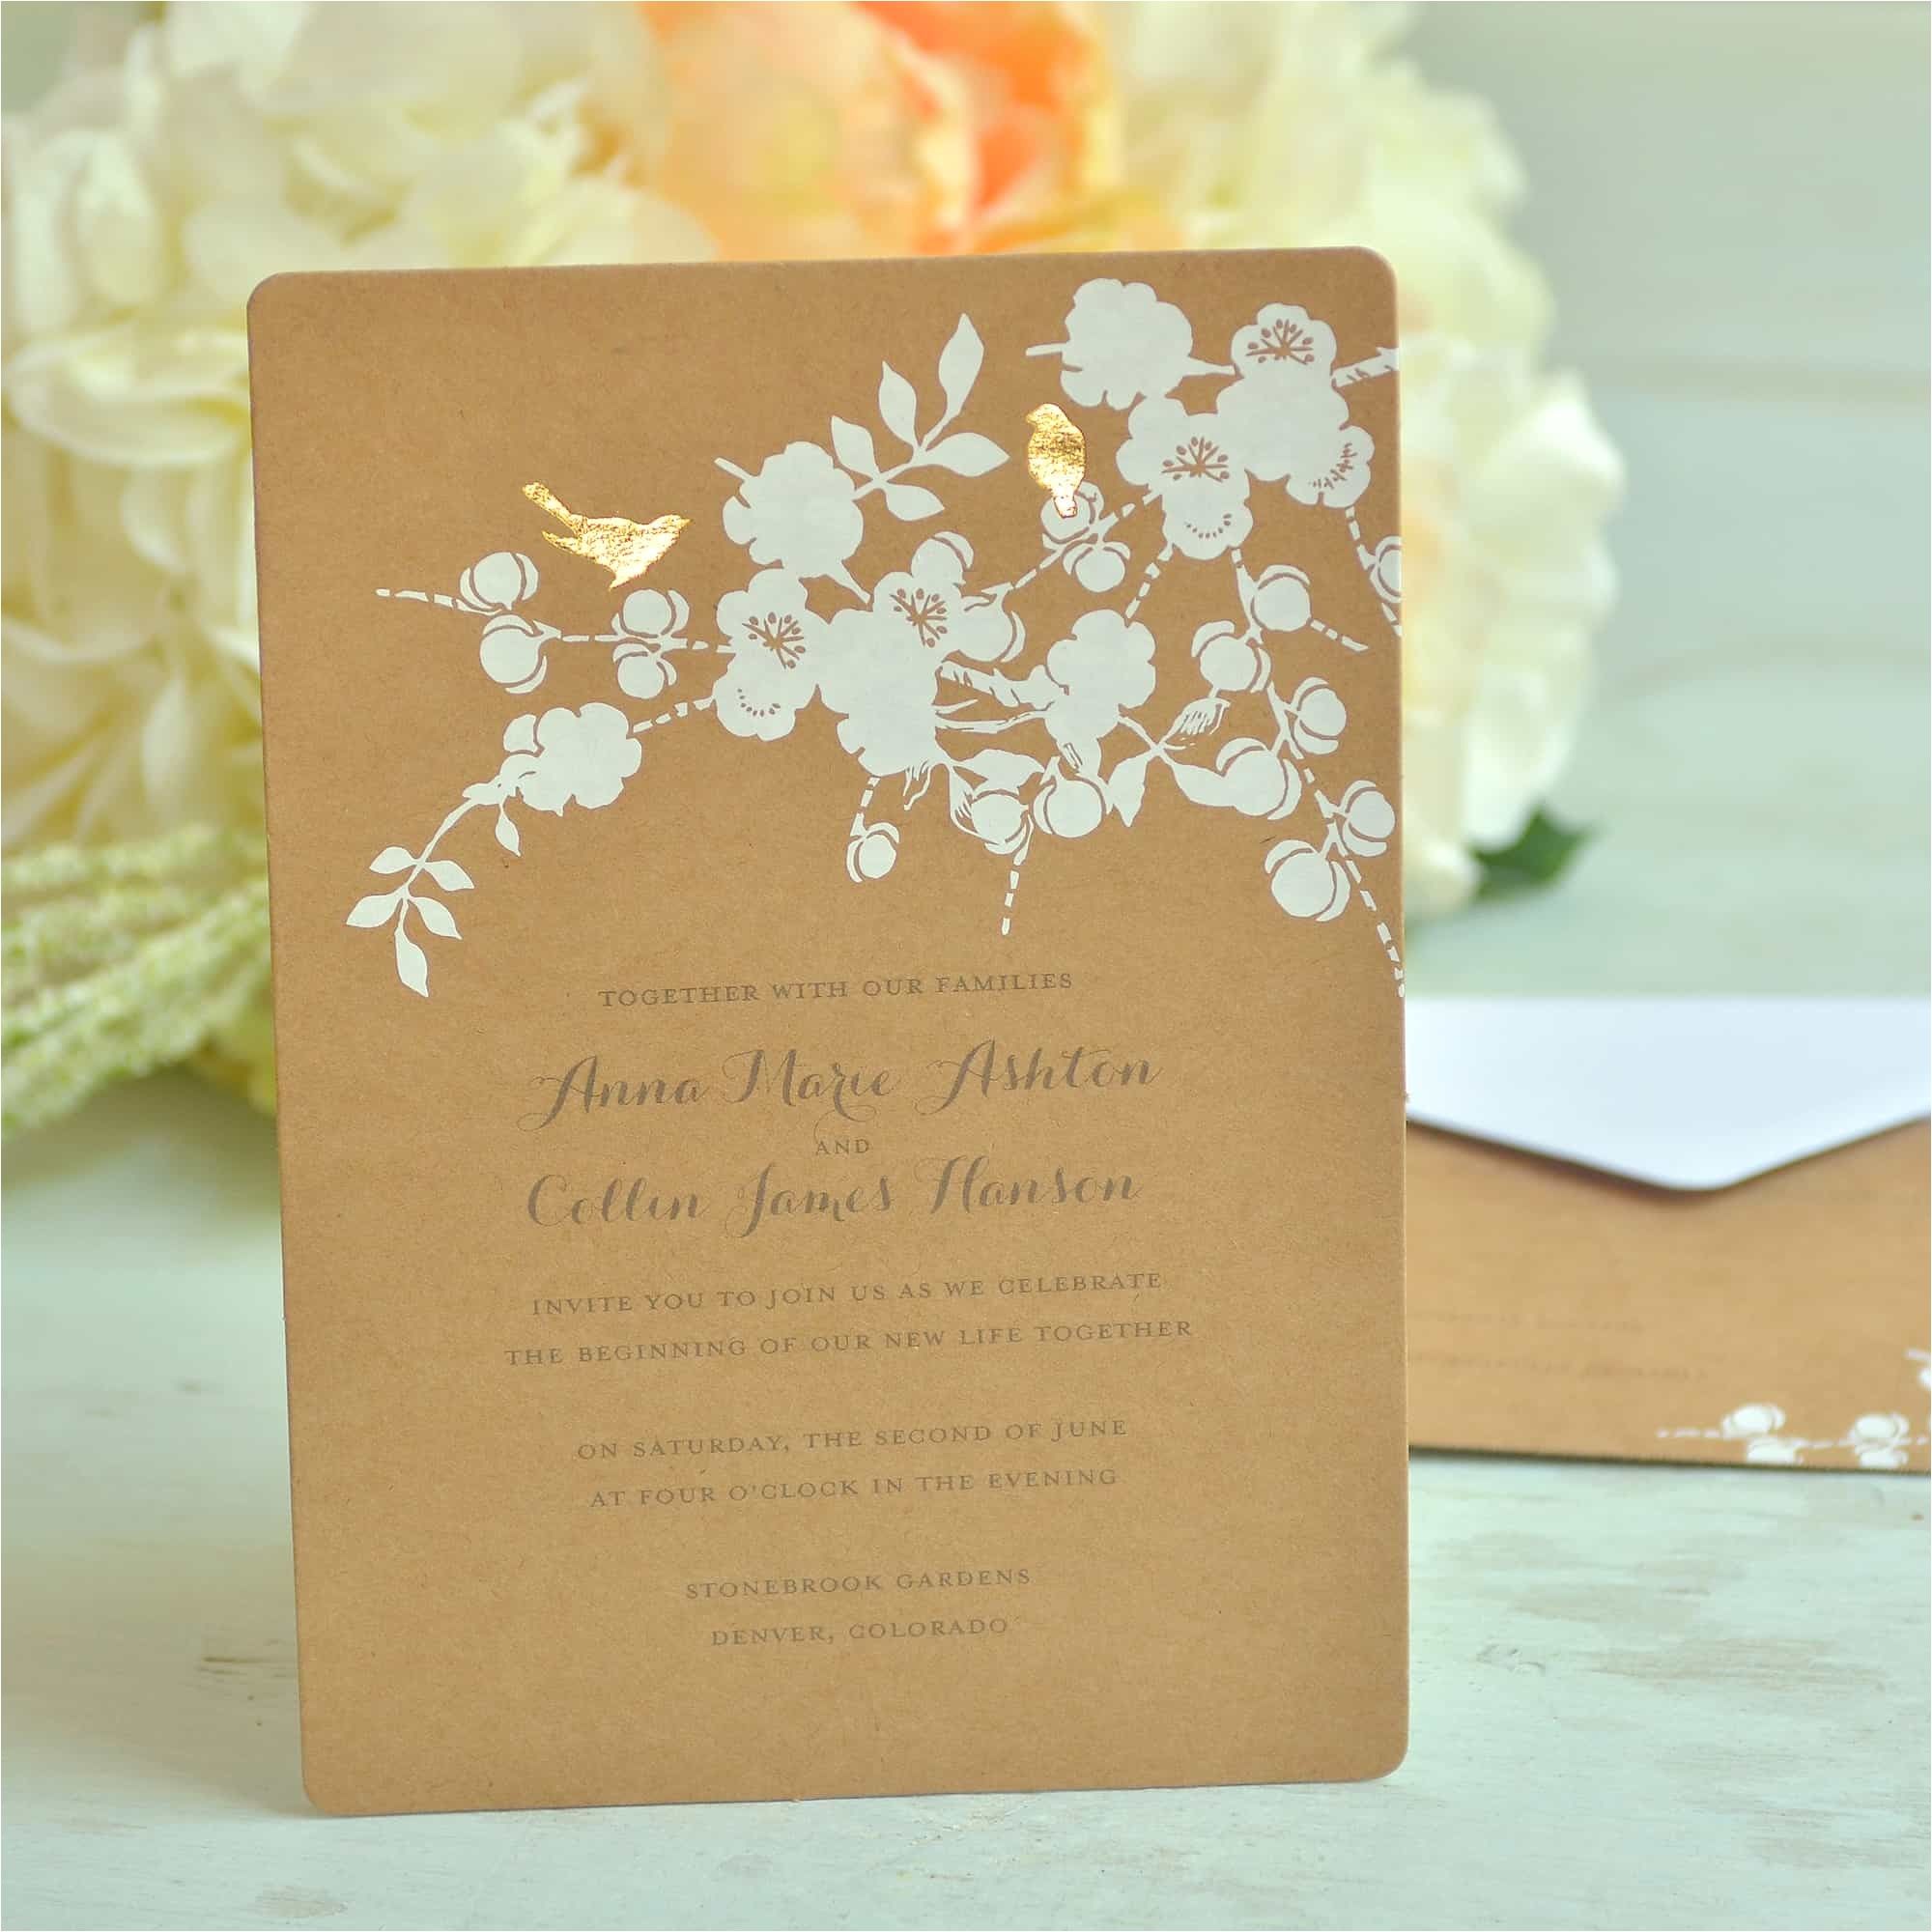 the walmart wedding invitations templates